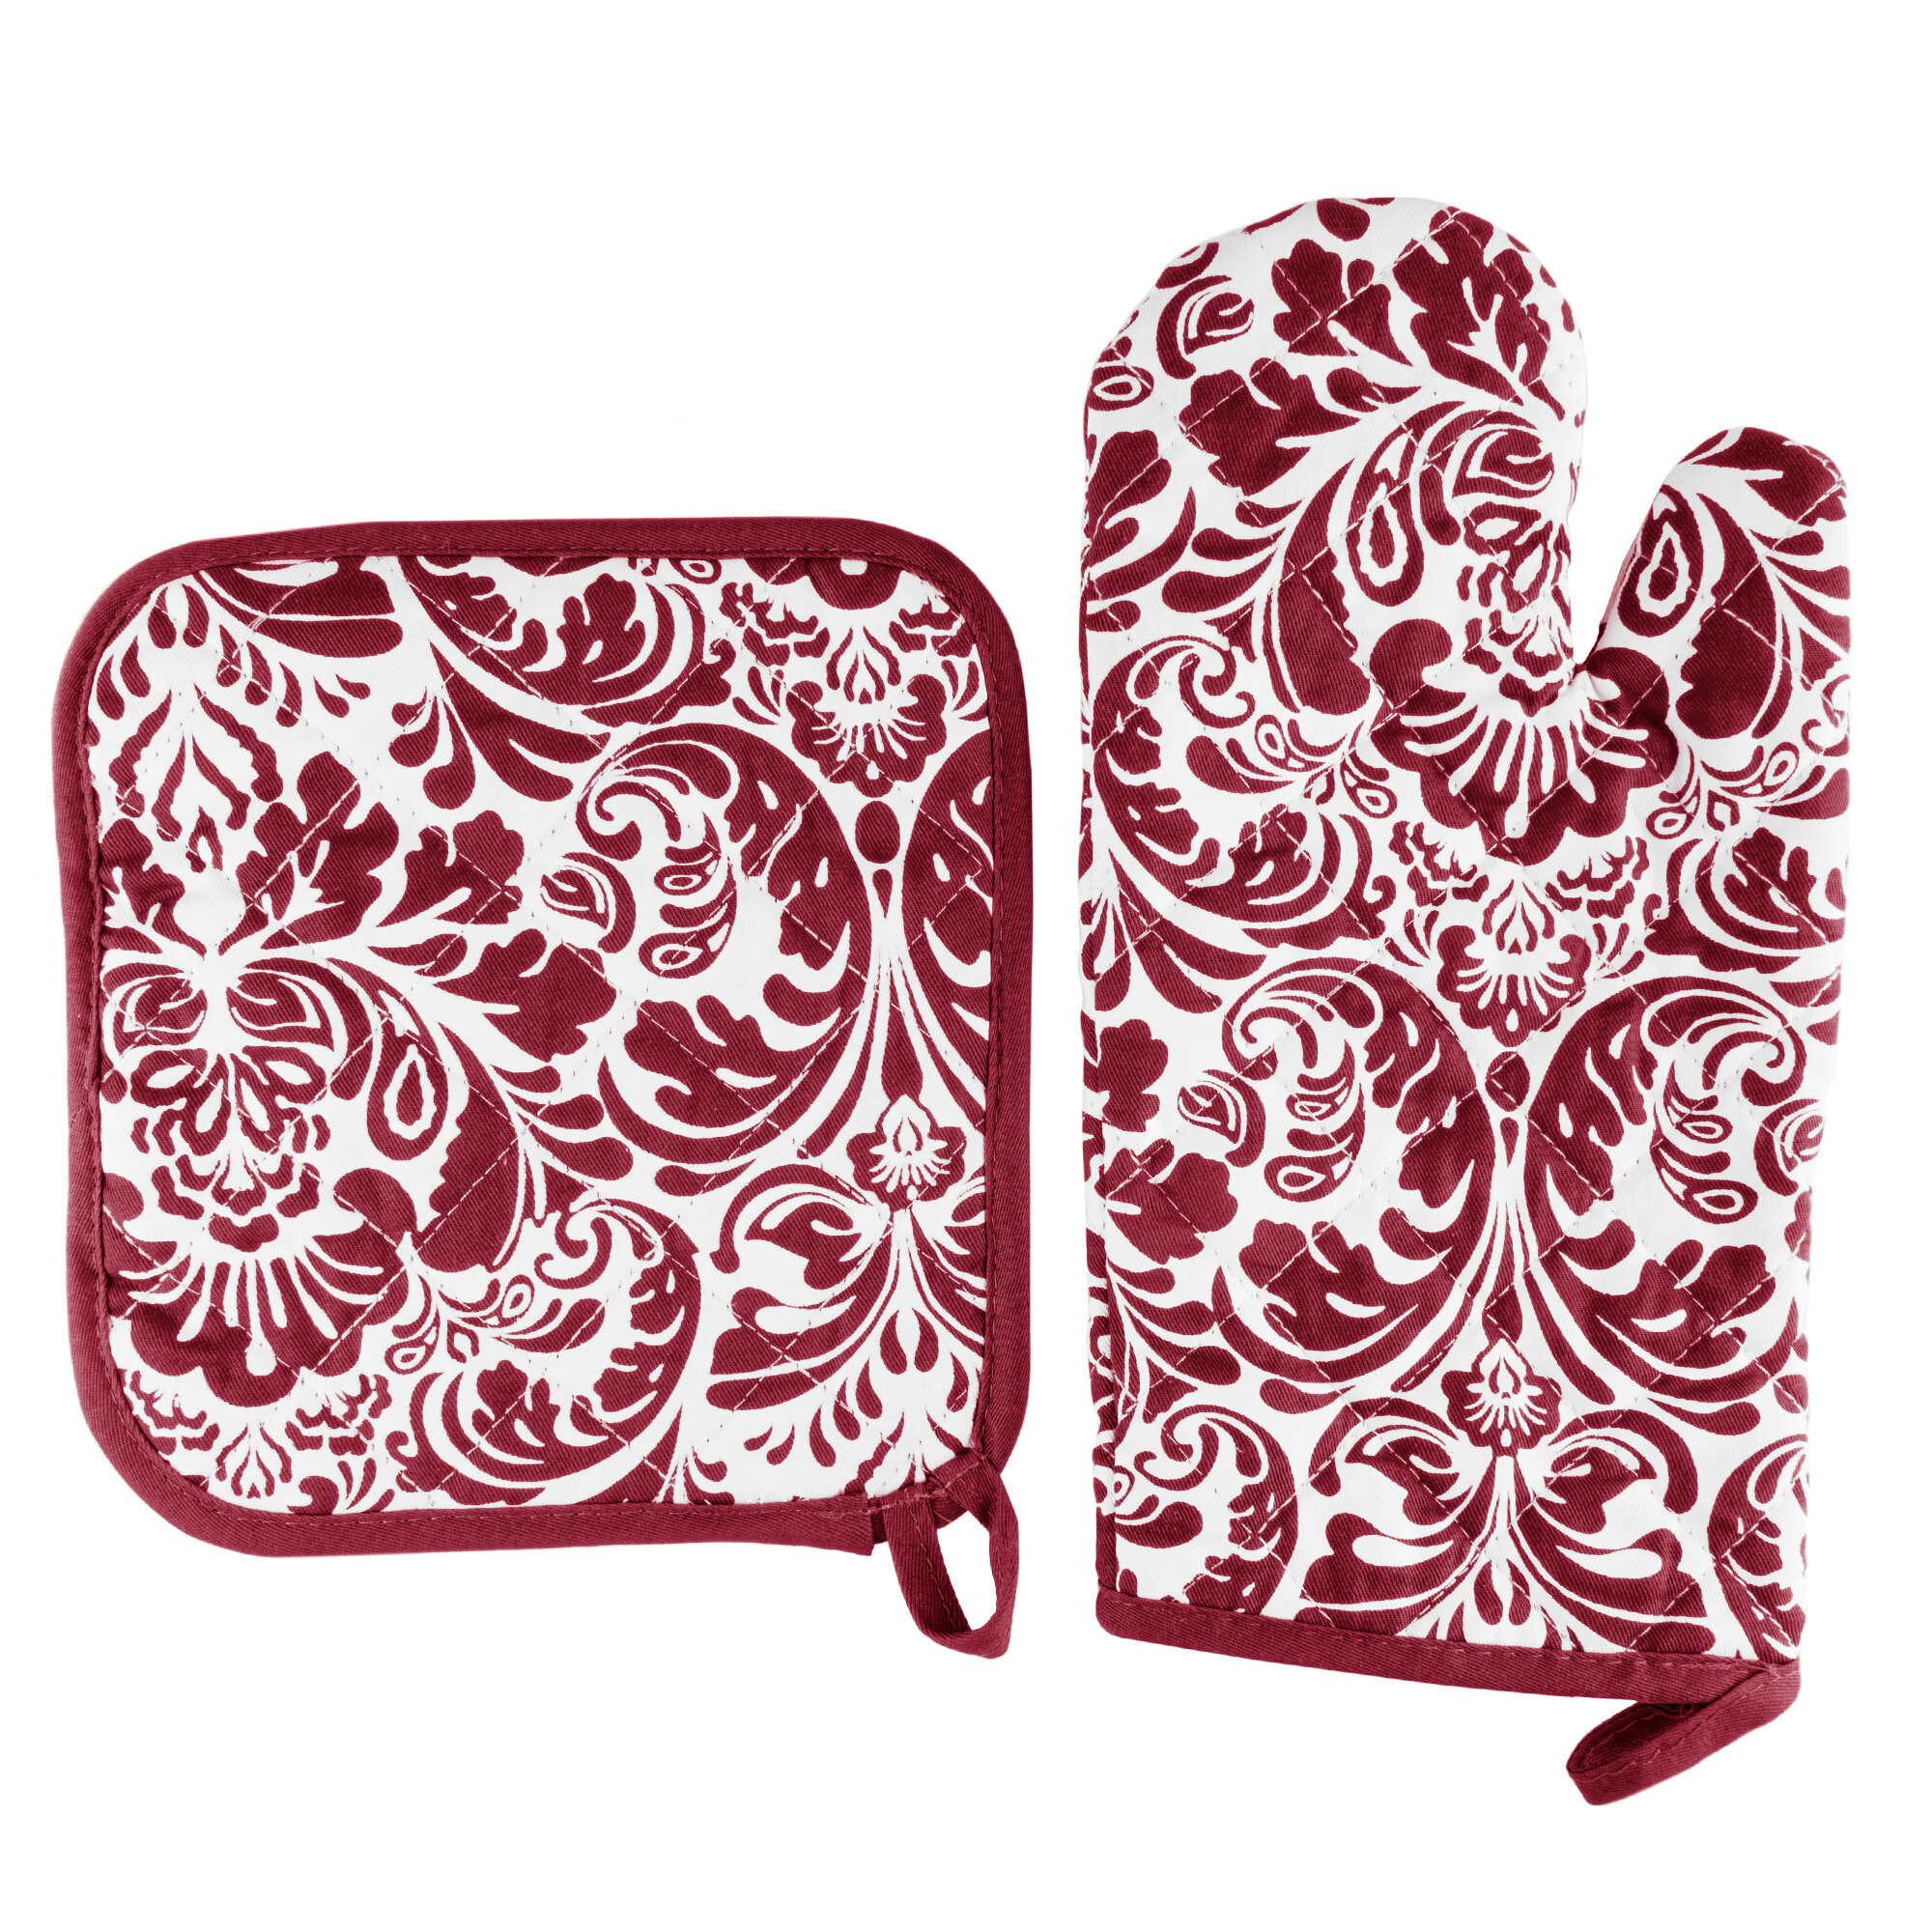 607bb18156c Lavish Home Damask Quilted 2 Piece Oven Mitt and Pot Holder Set   Reviews